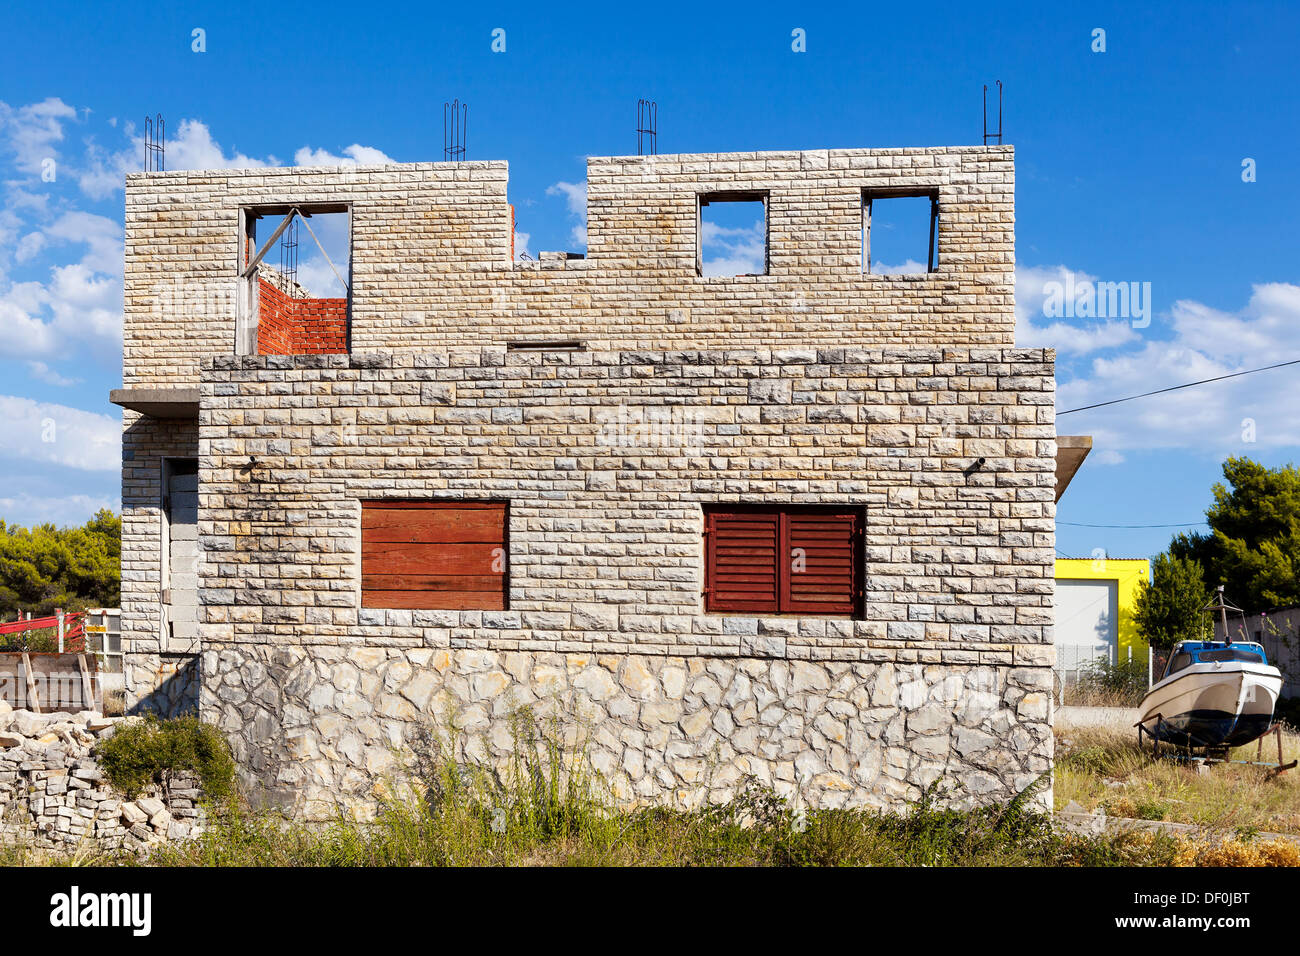 New house overlooking the Mediterranean Sea - Stock Image